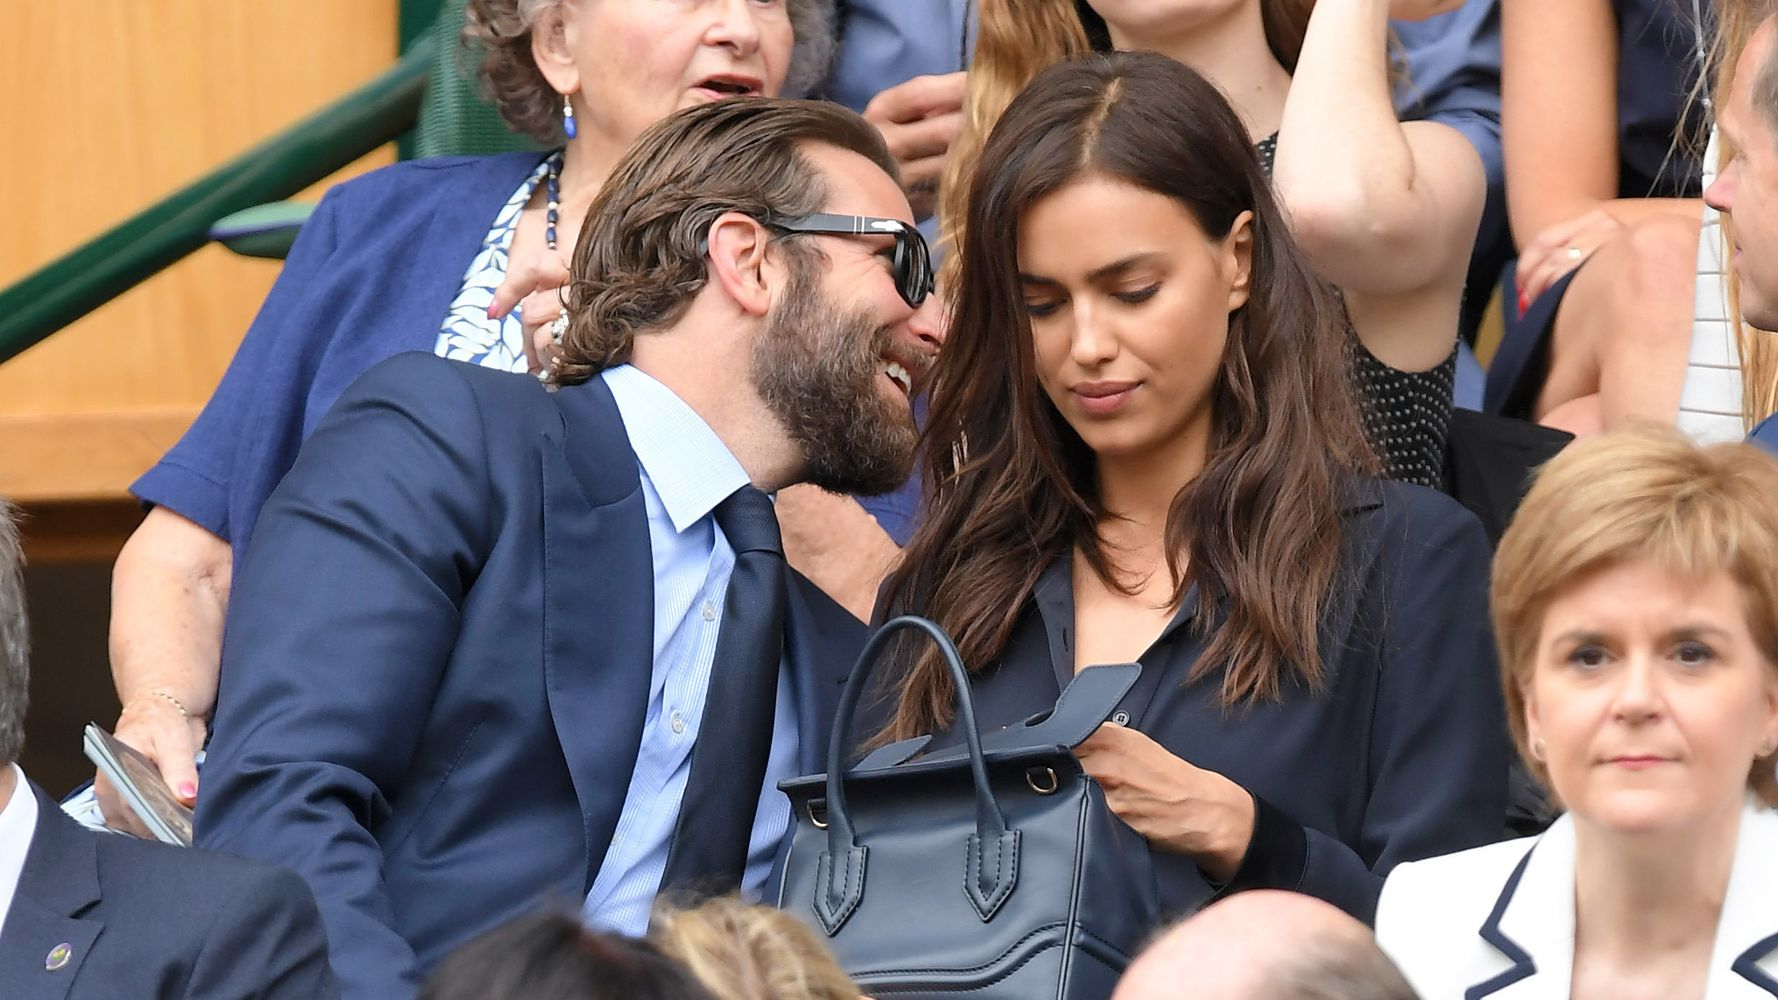 We Can Only Imagine What Bradley Cooper Said To Make Irina Shayk Cry